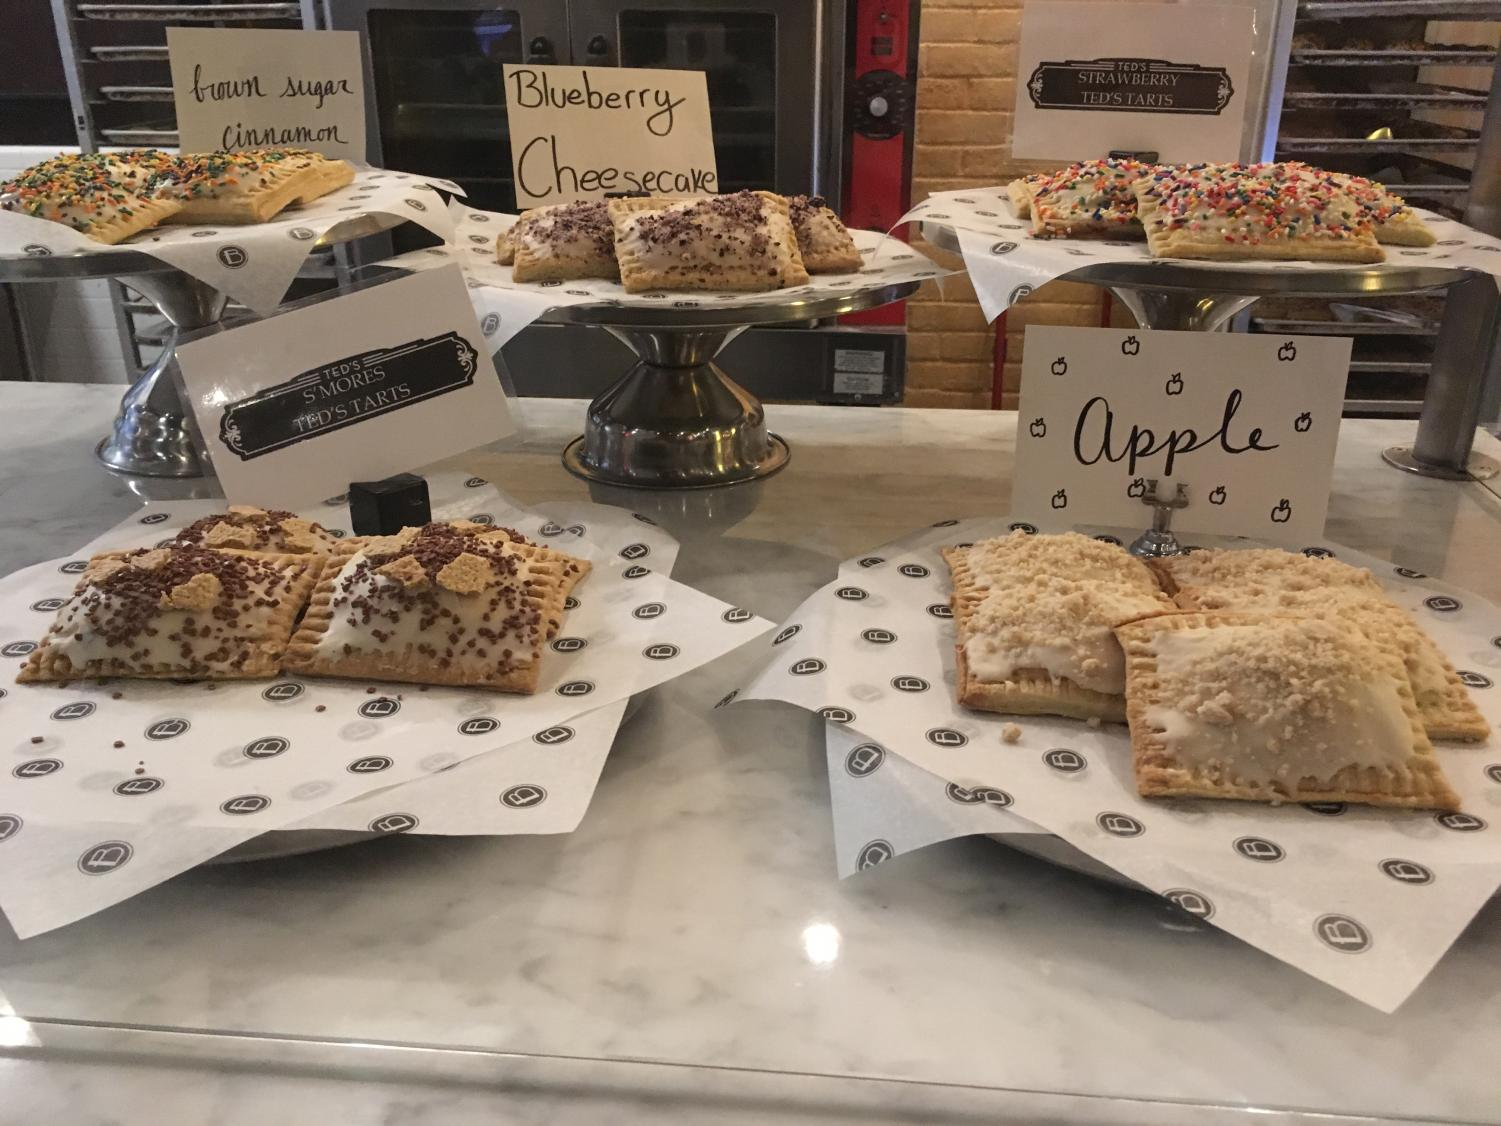 Ted's Bulletin offers unique, handmade poptarts. Located in five places in the D.C. area, Ted's Bulletin is coming to Ballston Quarter later this year.